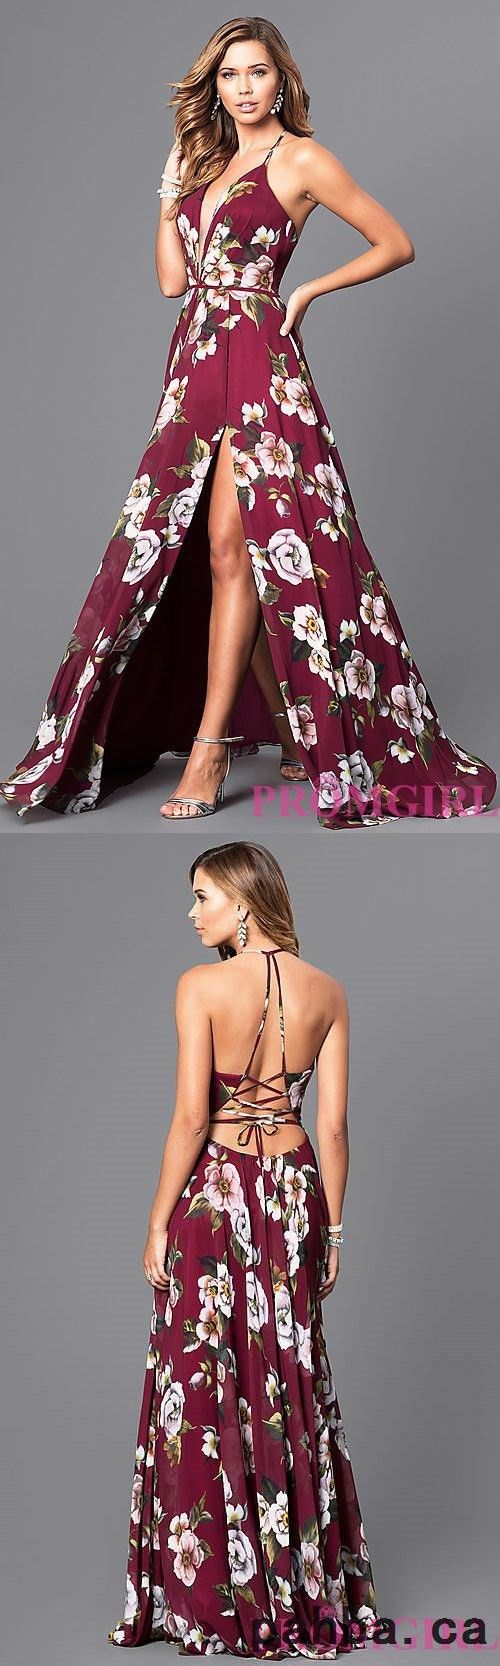 floral v neck long corset prom dress M0373 #prom #promdress #promdresses #longpromdress #promgowns #promgown #2018style #newfashion #newstyles #2018newprom#eveninggowns#floralpromdress#vneckpromdress#corsetpromdress